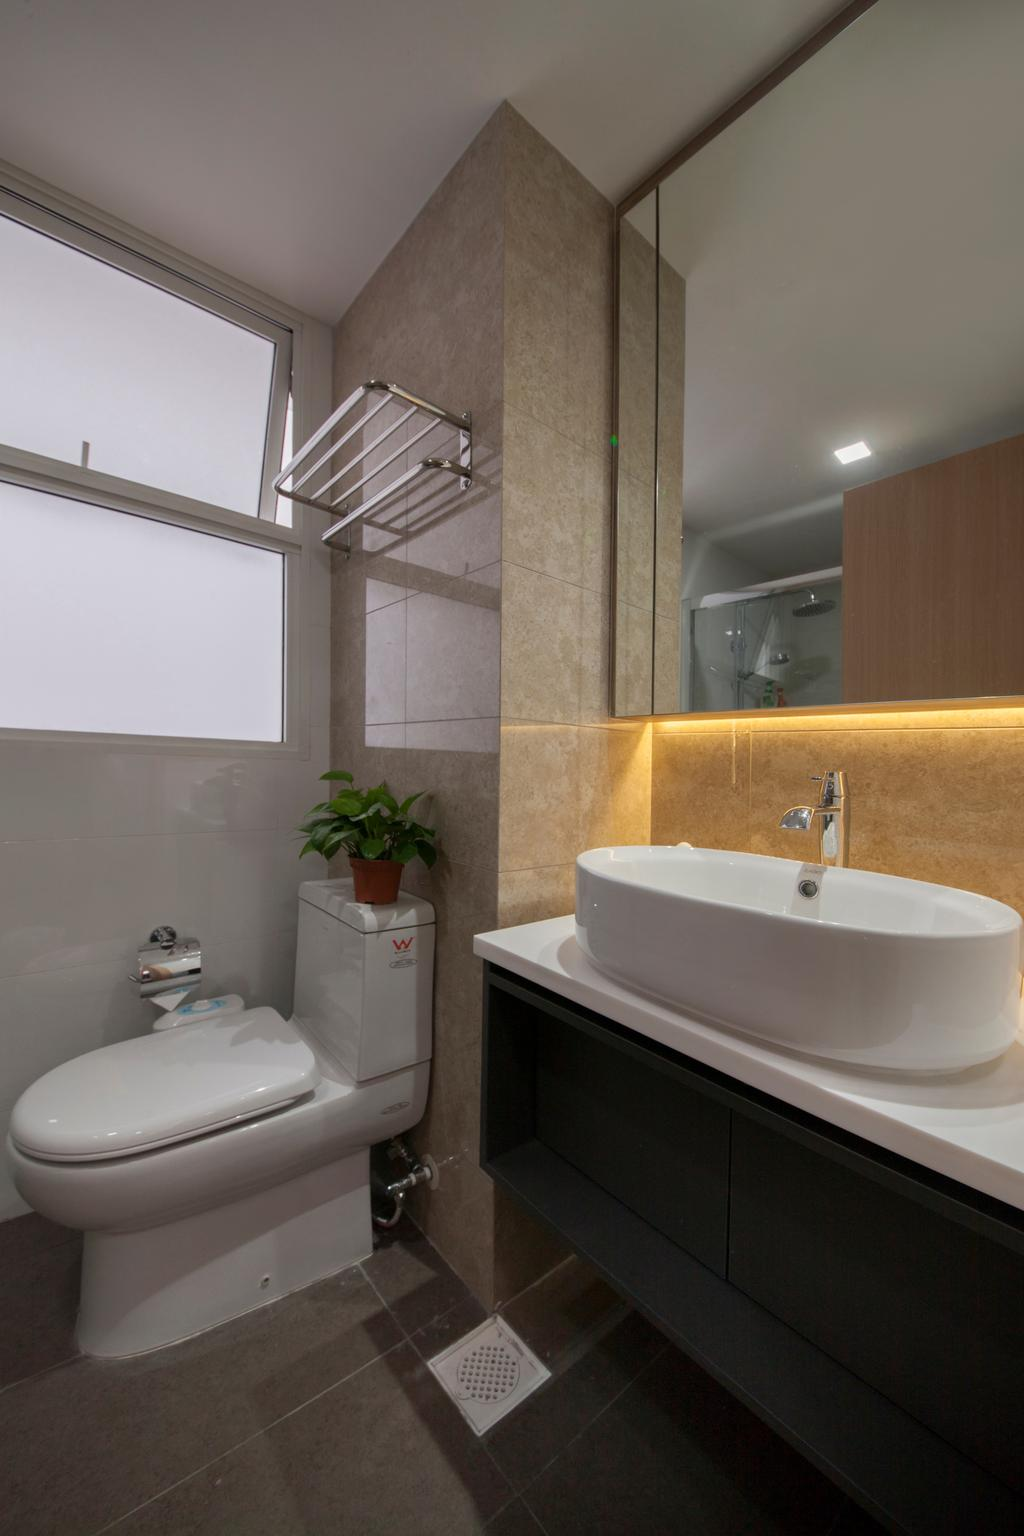 HDB, Bathroom, Forestville, Interior Designer, Project Guru, Modern Contemporary Bathroom, Black Sink Counter, White Sink Countertop, Protruding Sink, Hidden Interior Lighting, Ceramic Tiles, Architecture, Building, Skylight, Window, Indoors, Interior Design, Room